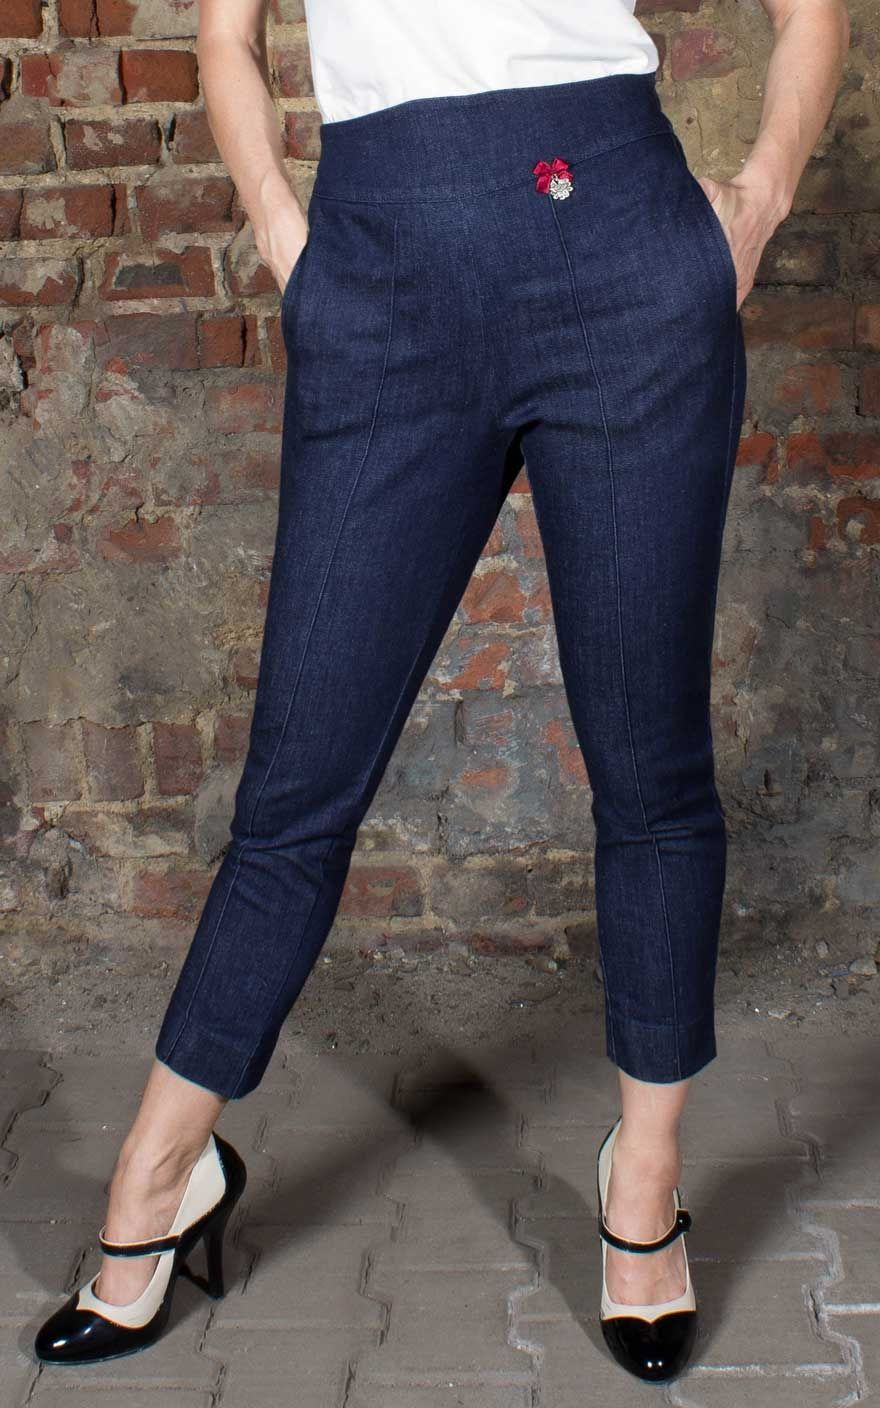 Denim Ladies 78 Rumble59 Pencil PantsBleistifthose OkPXiZuT